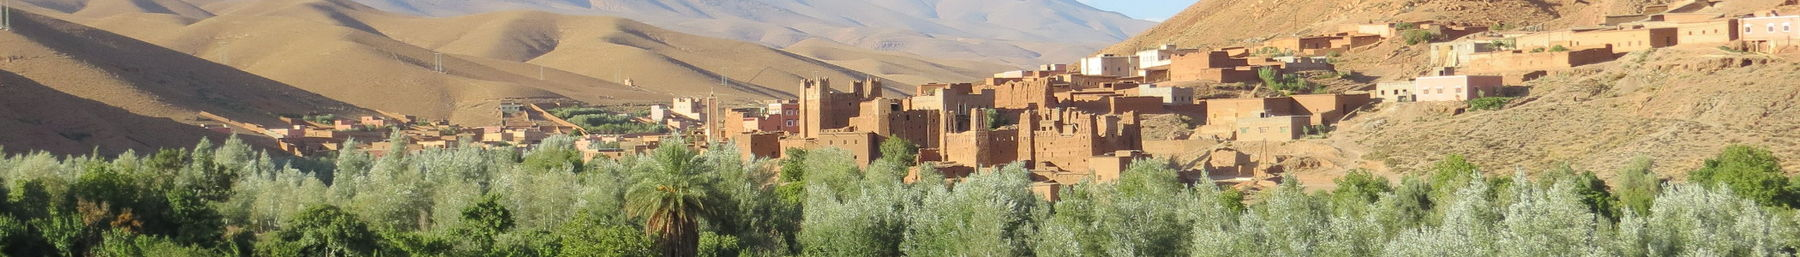 The village of Aït Arbi in Saharan Morocco